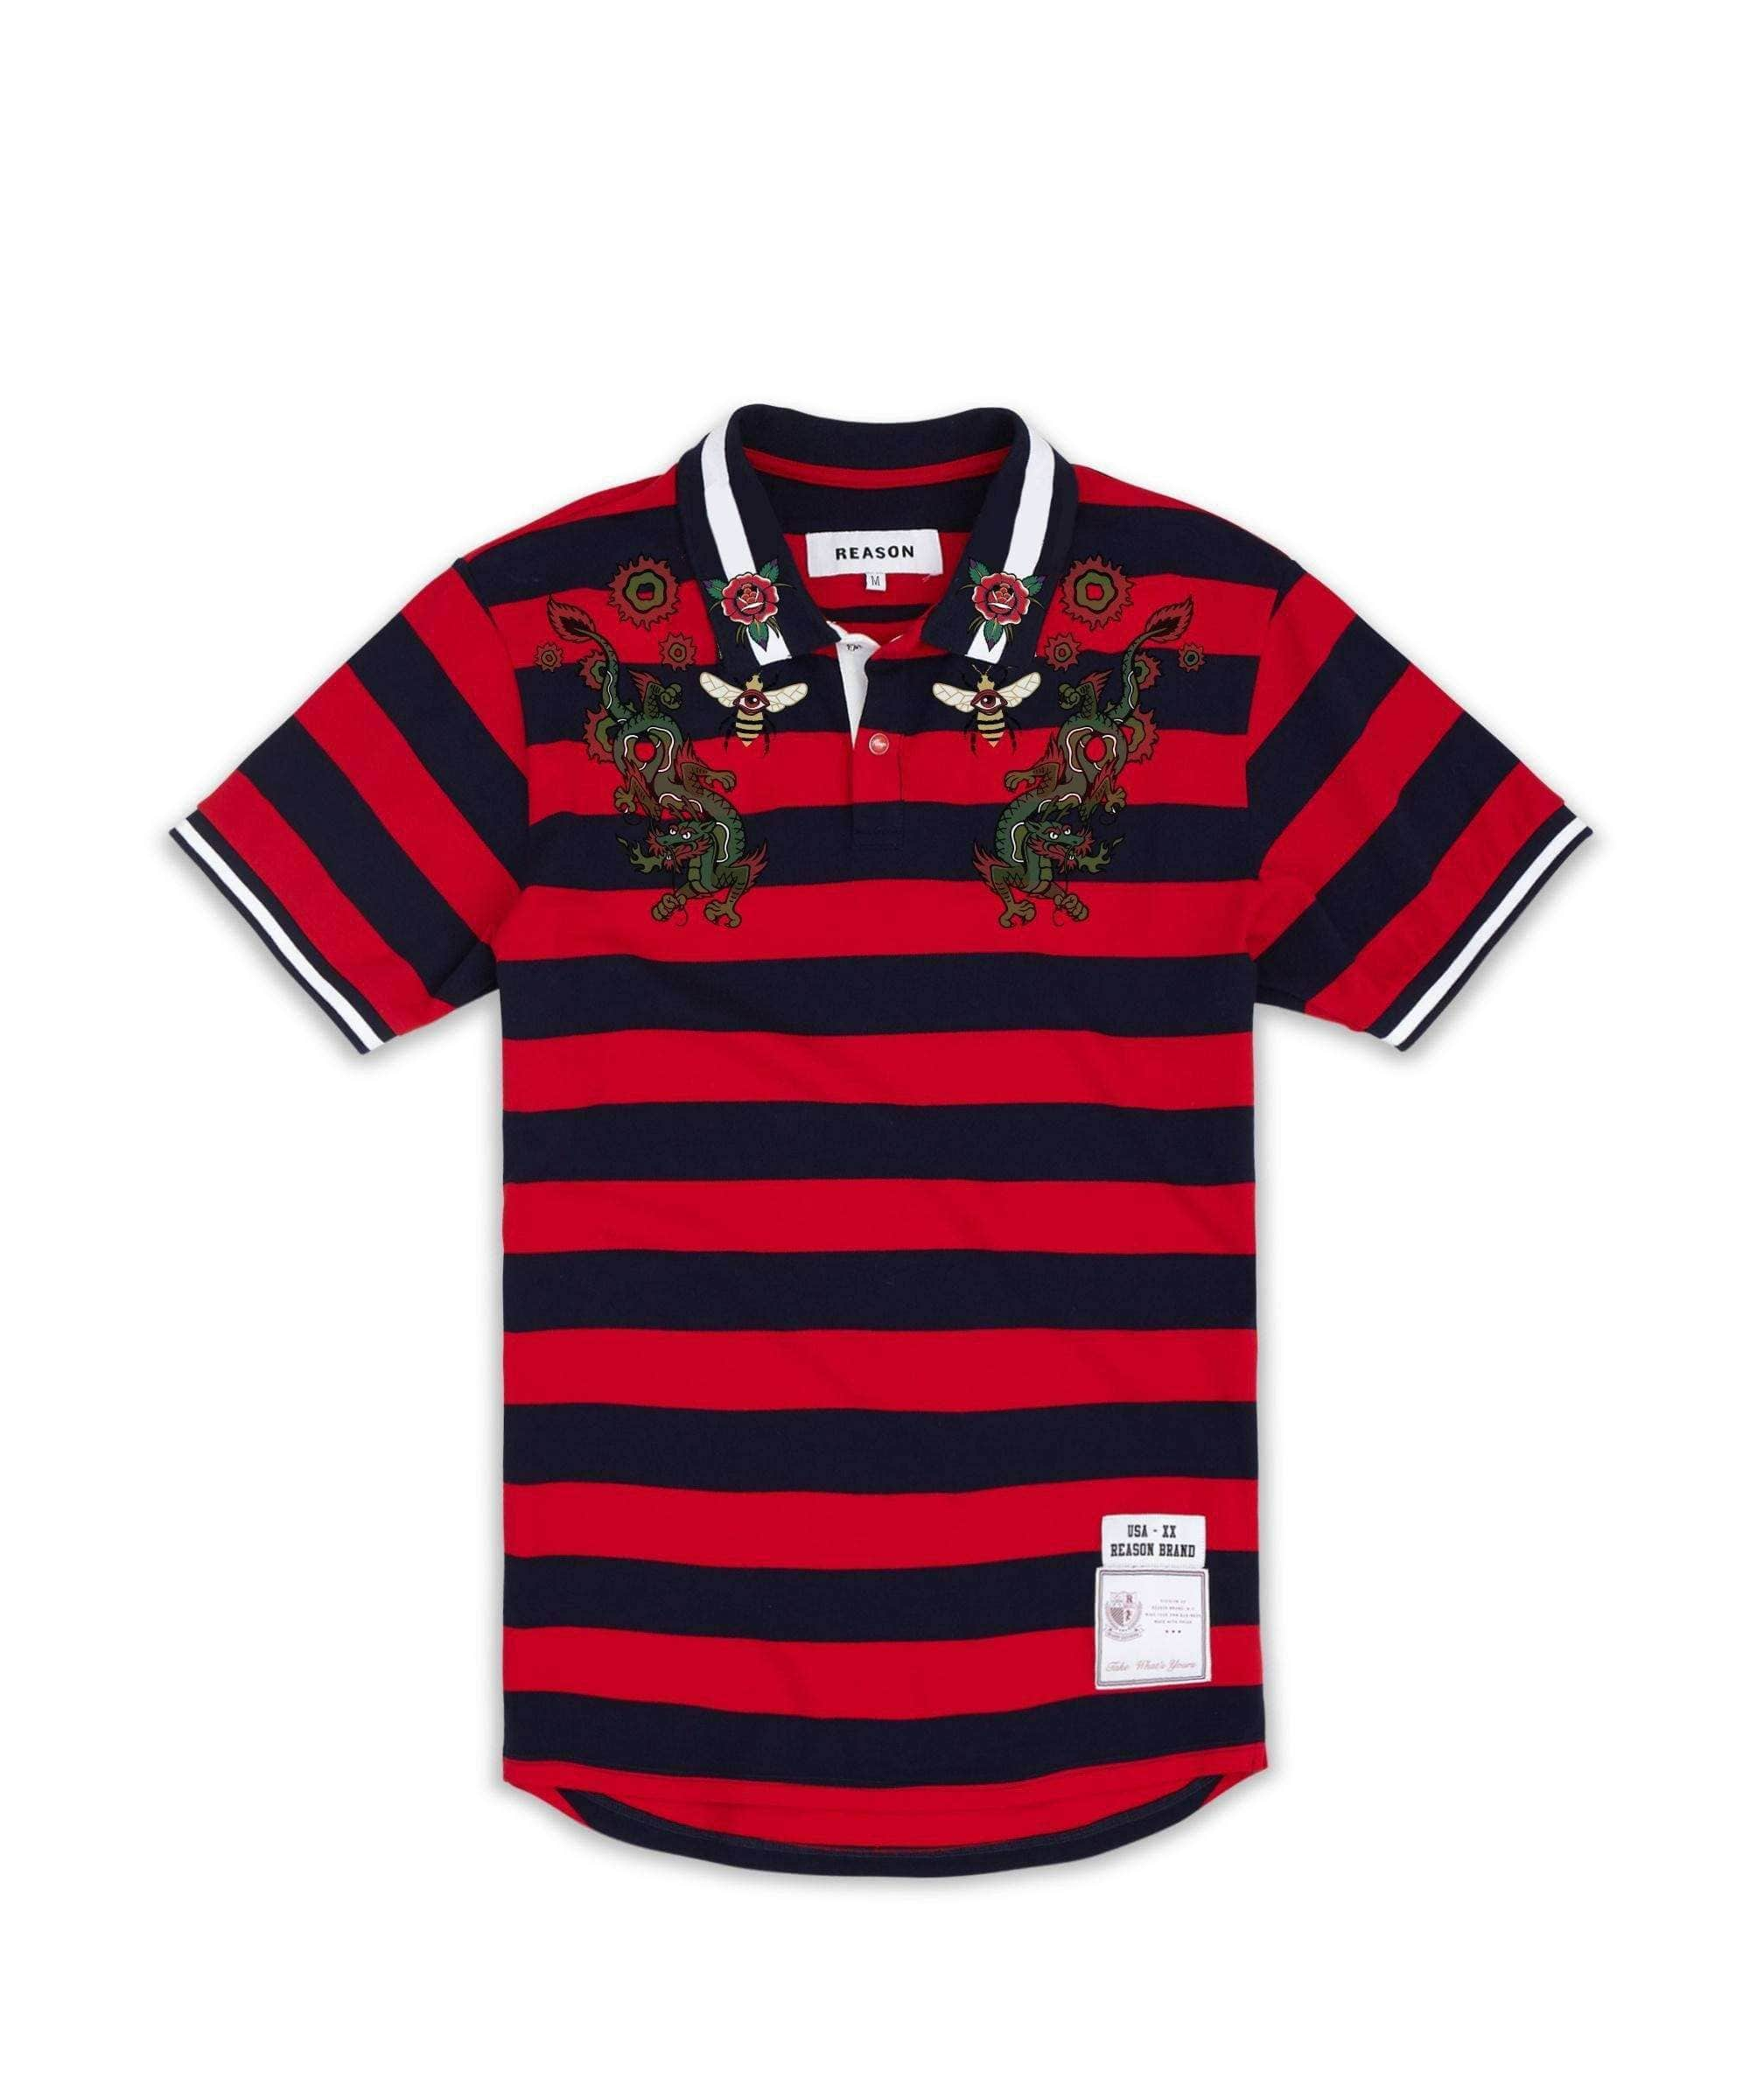 DRAGON POLO - RED - Reason Clothing